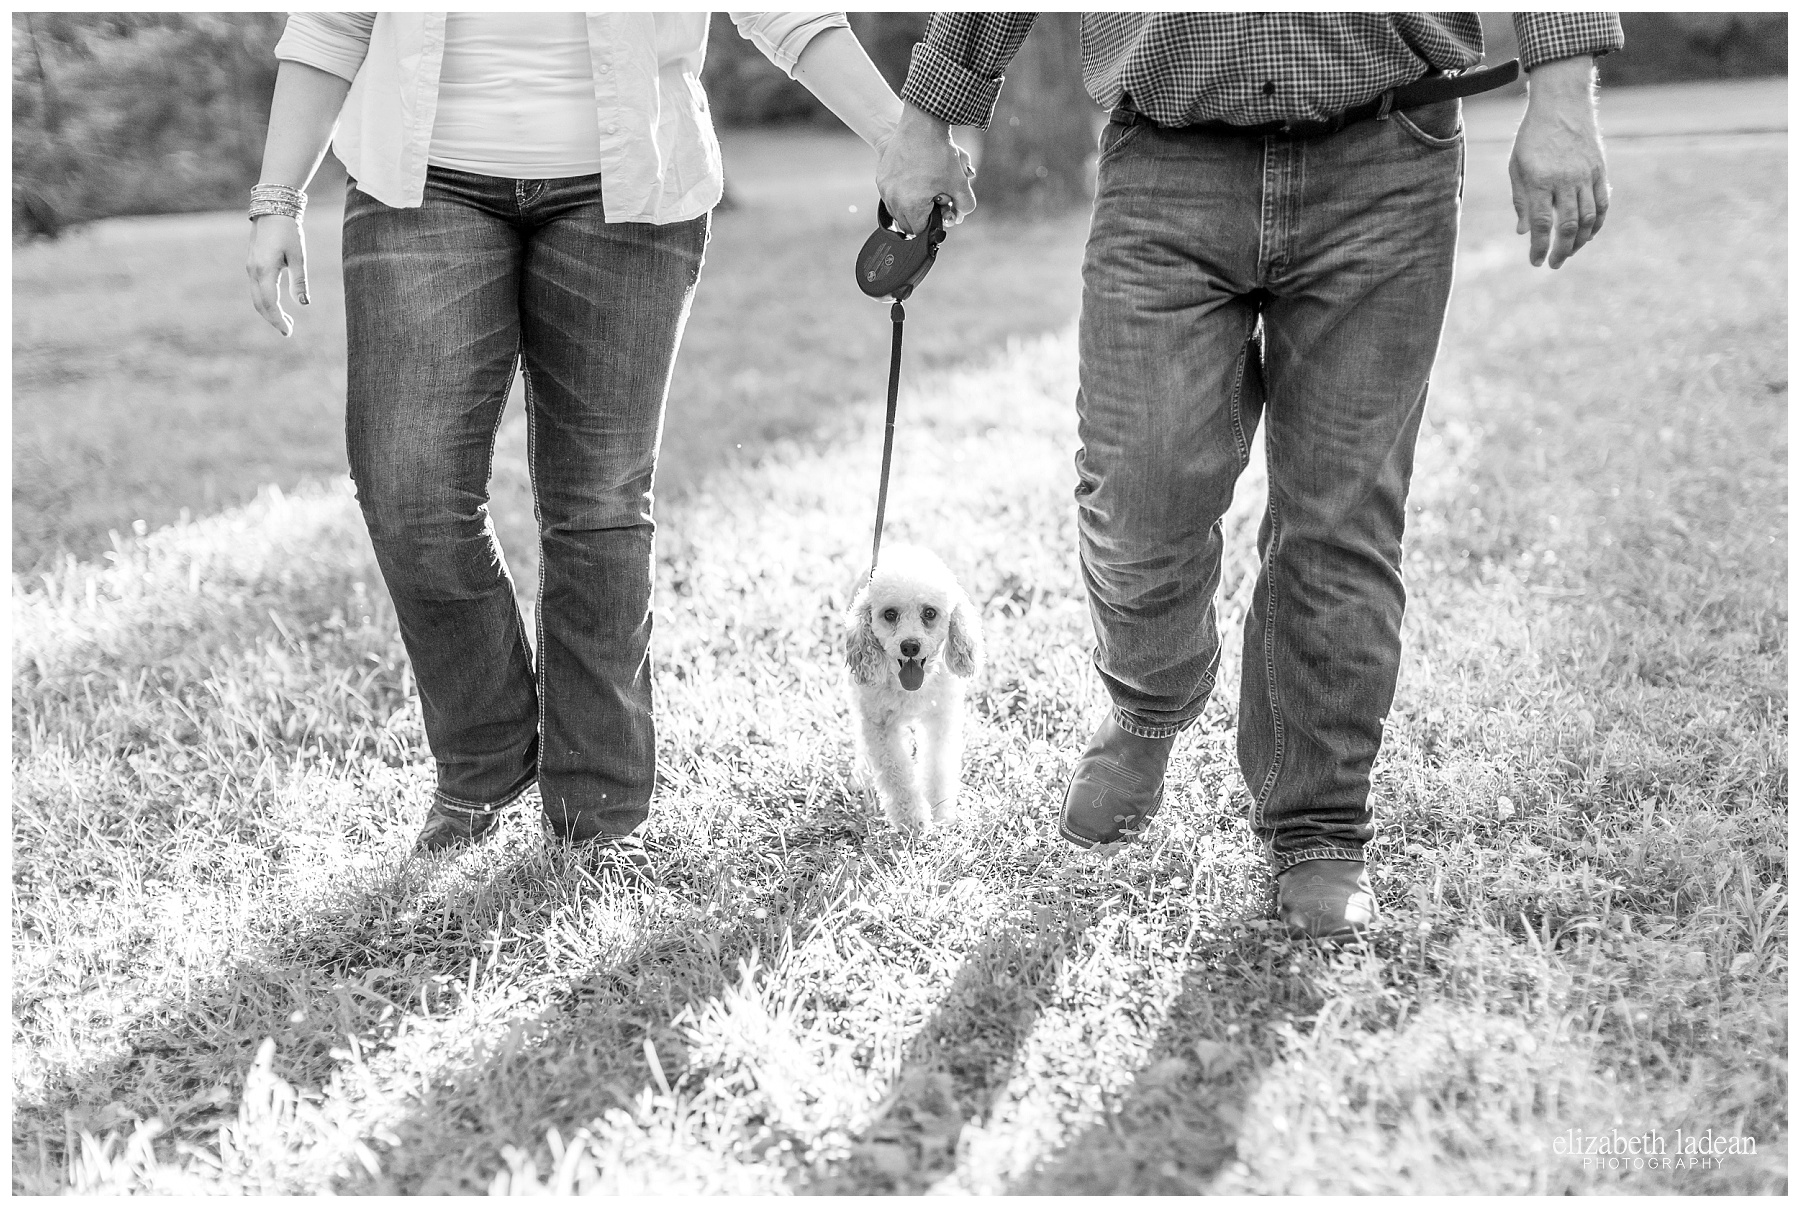 Kansas-City-Engagement-Photography-Shawnee-Mission-H+JJ2017-Elizabeth-Ladean-Photography-photo_1929.jpg